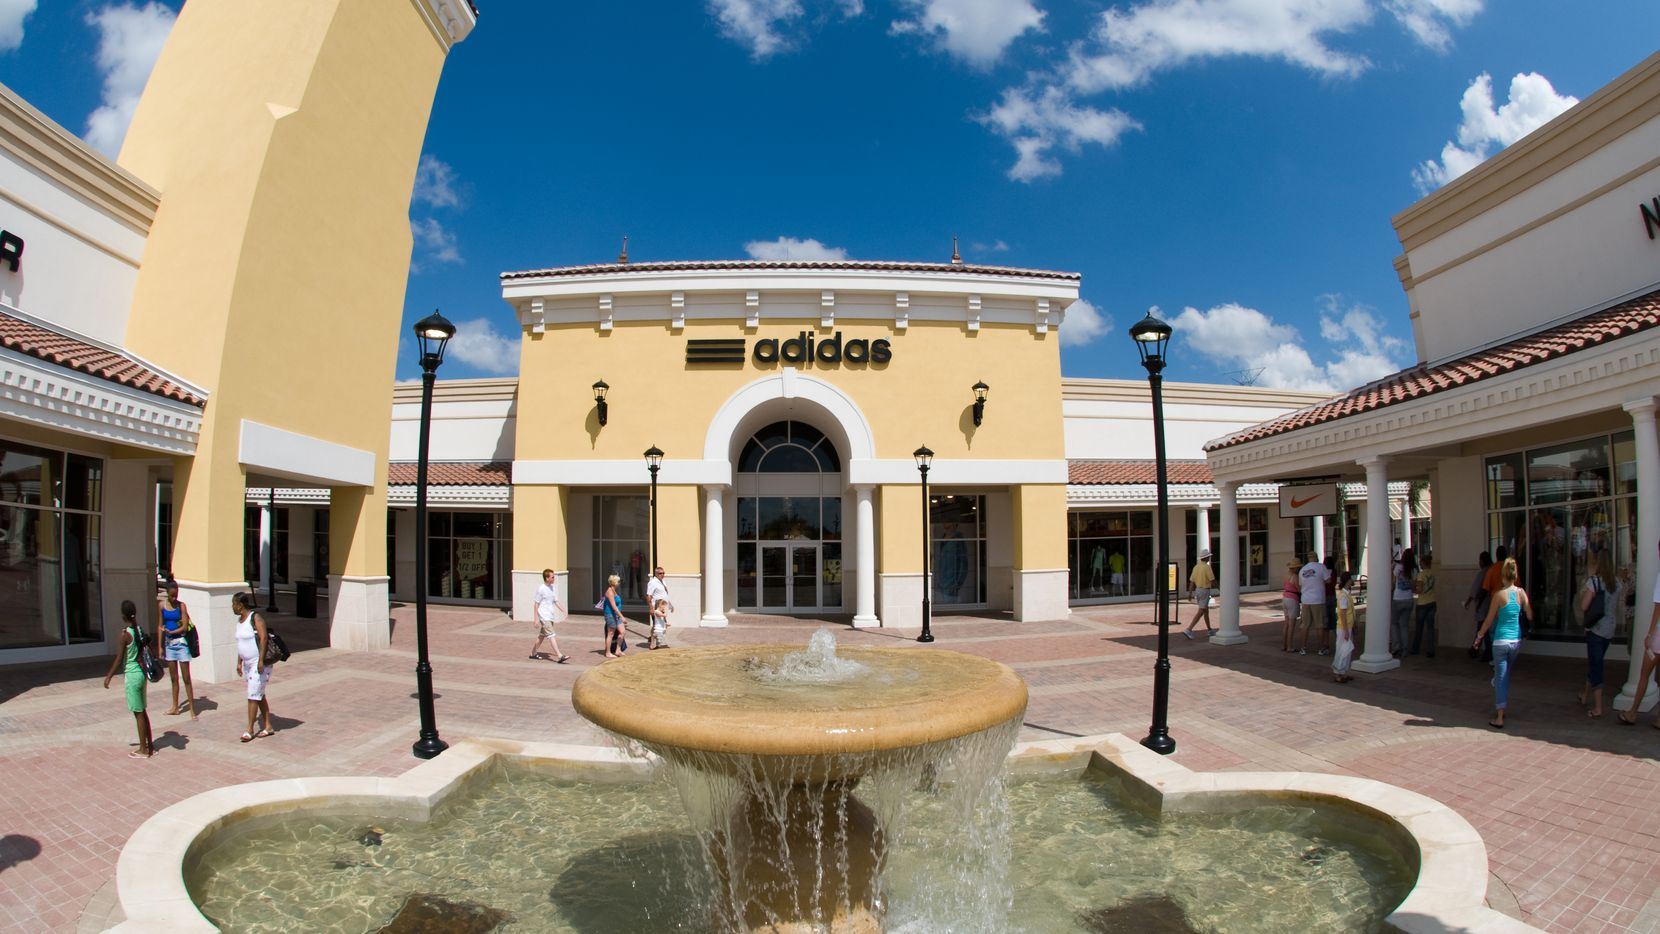 Grand Prairie Premium Outlets' newest tenant should spice things up. This 2012 file photo shows the scene at the outlet mall back when it opened, and was then known as Paragon Outlets.